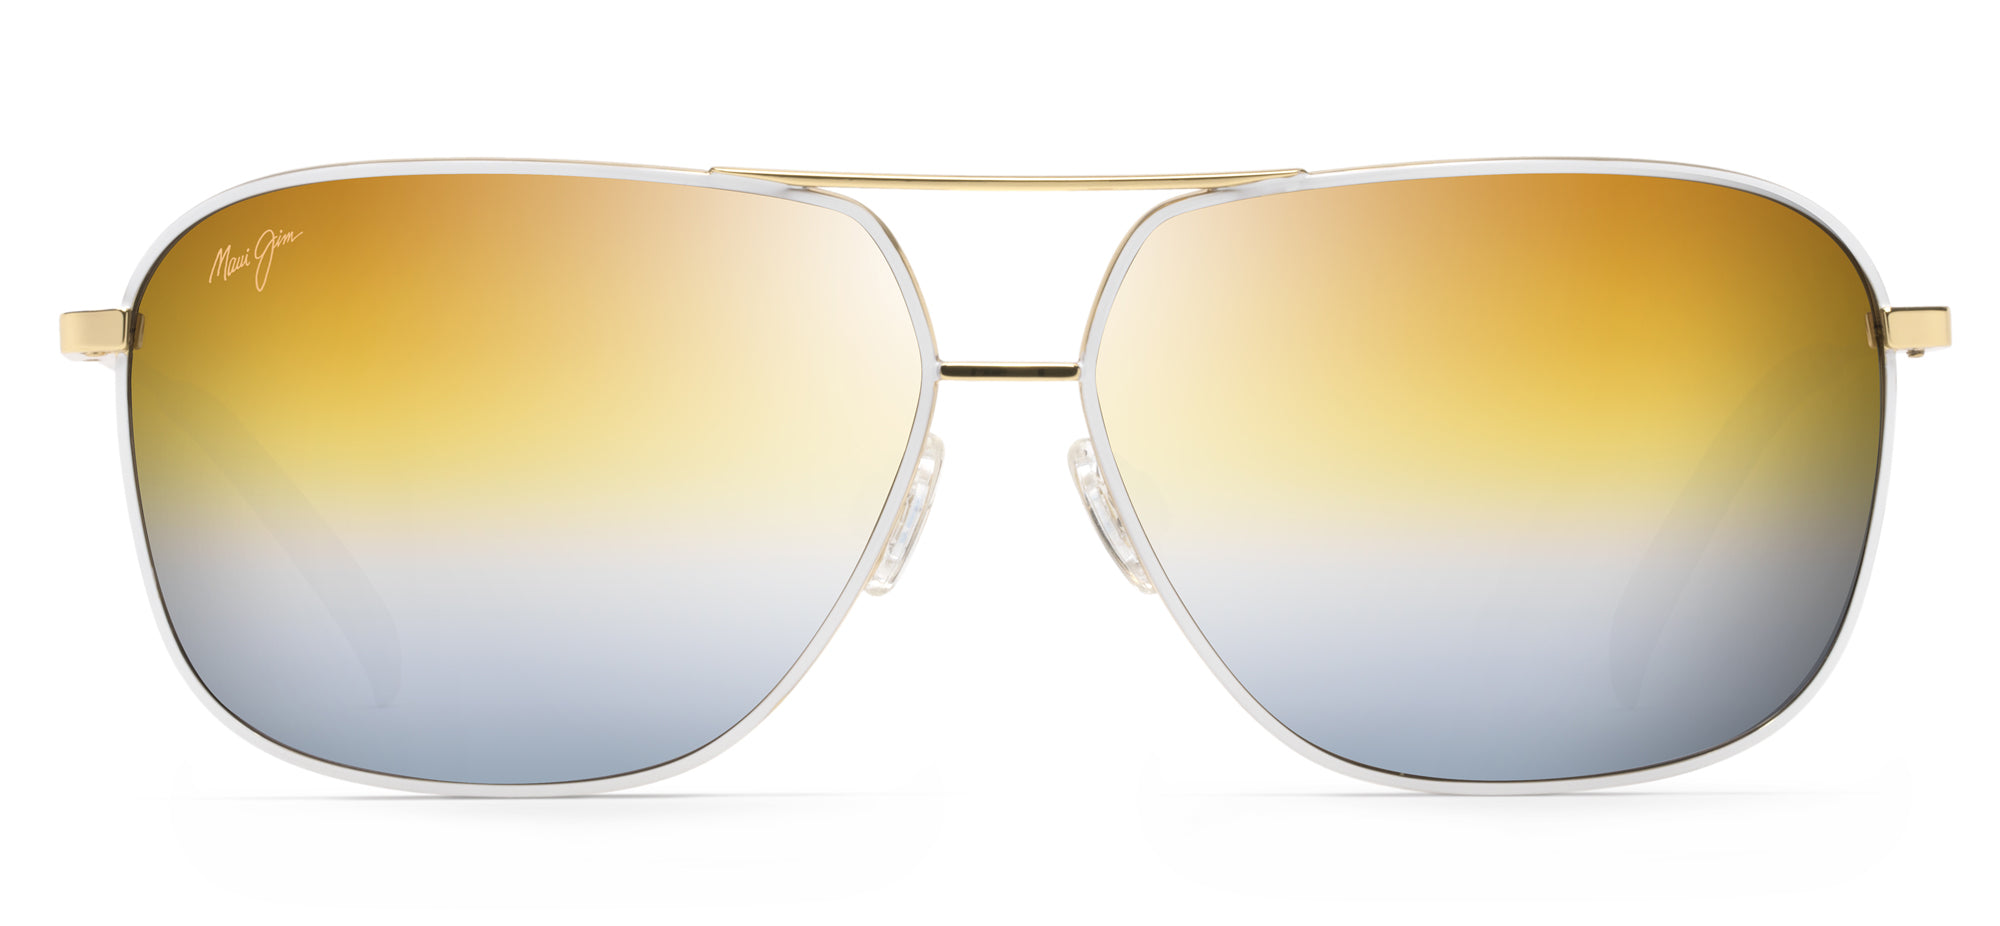 bc712f16ad9 Maui Jim Kami 778 Aviator Sunglasses- Gold with White, Dual Mirror Gold to  Silver Lenses